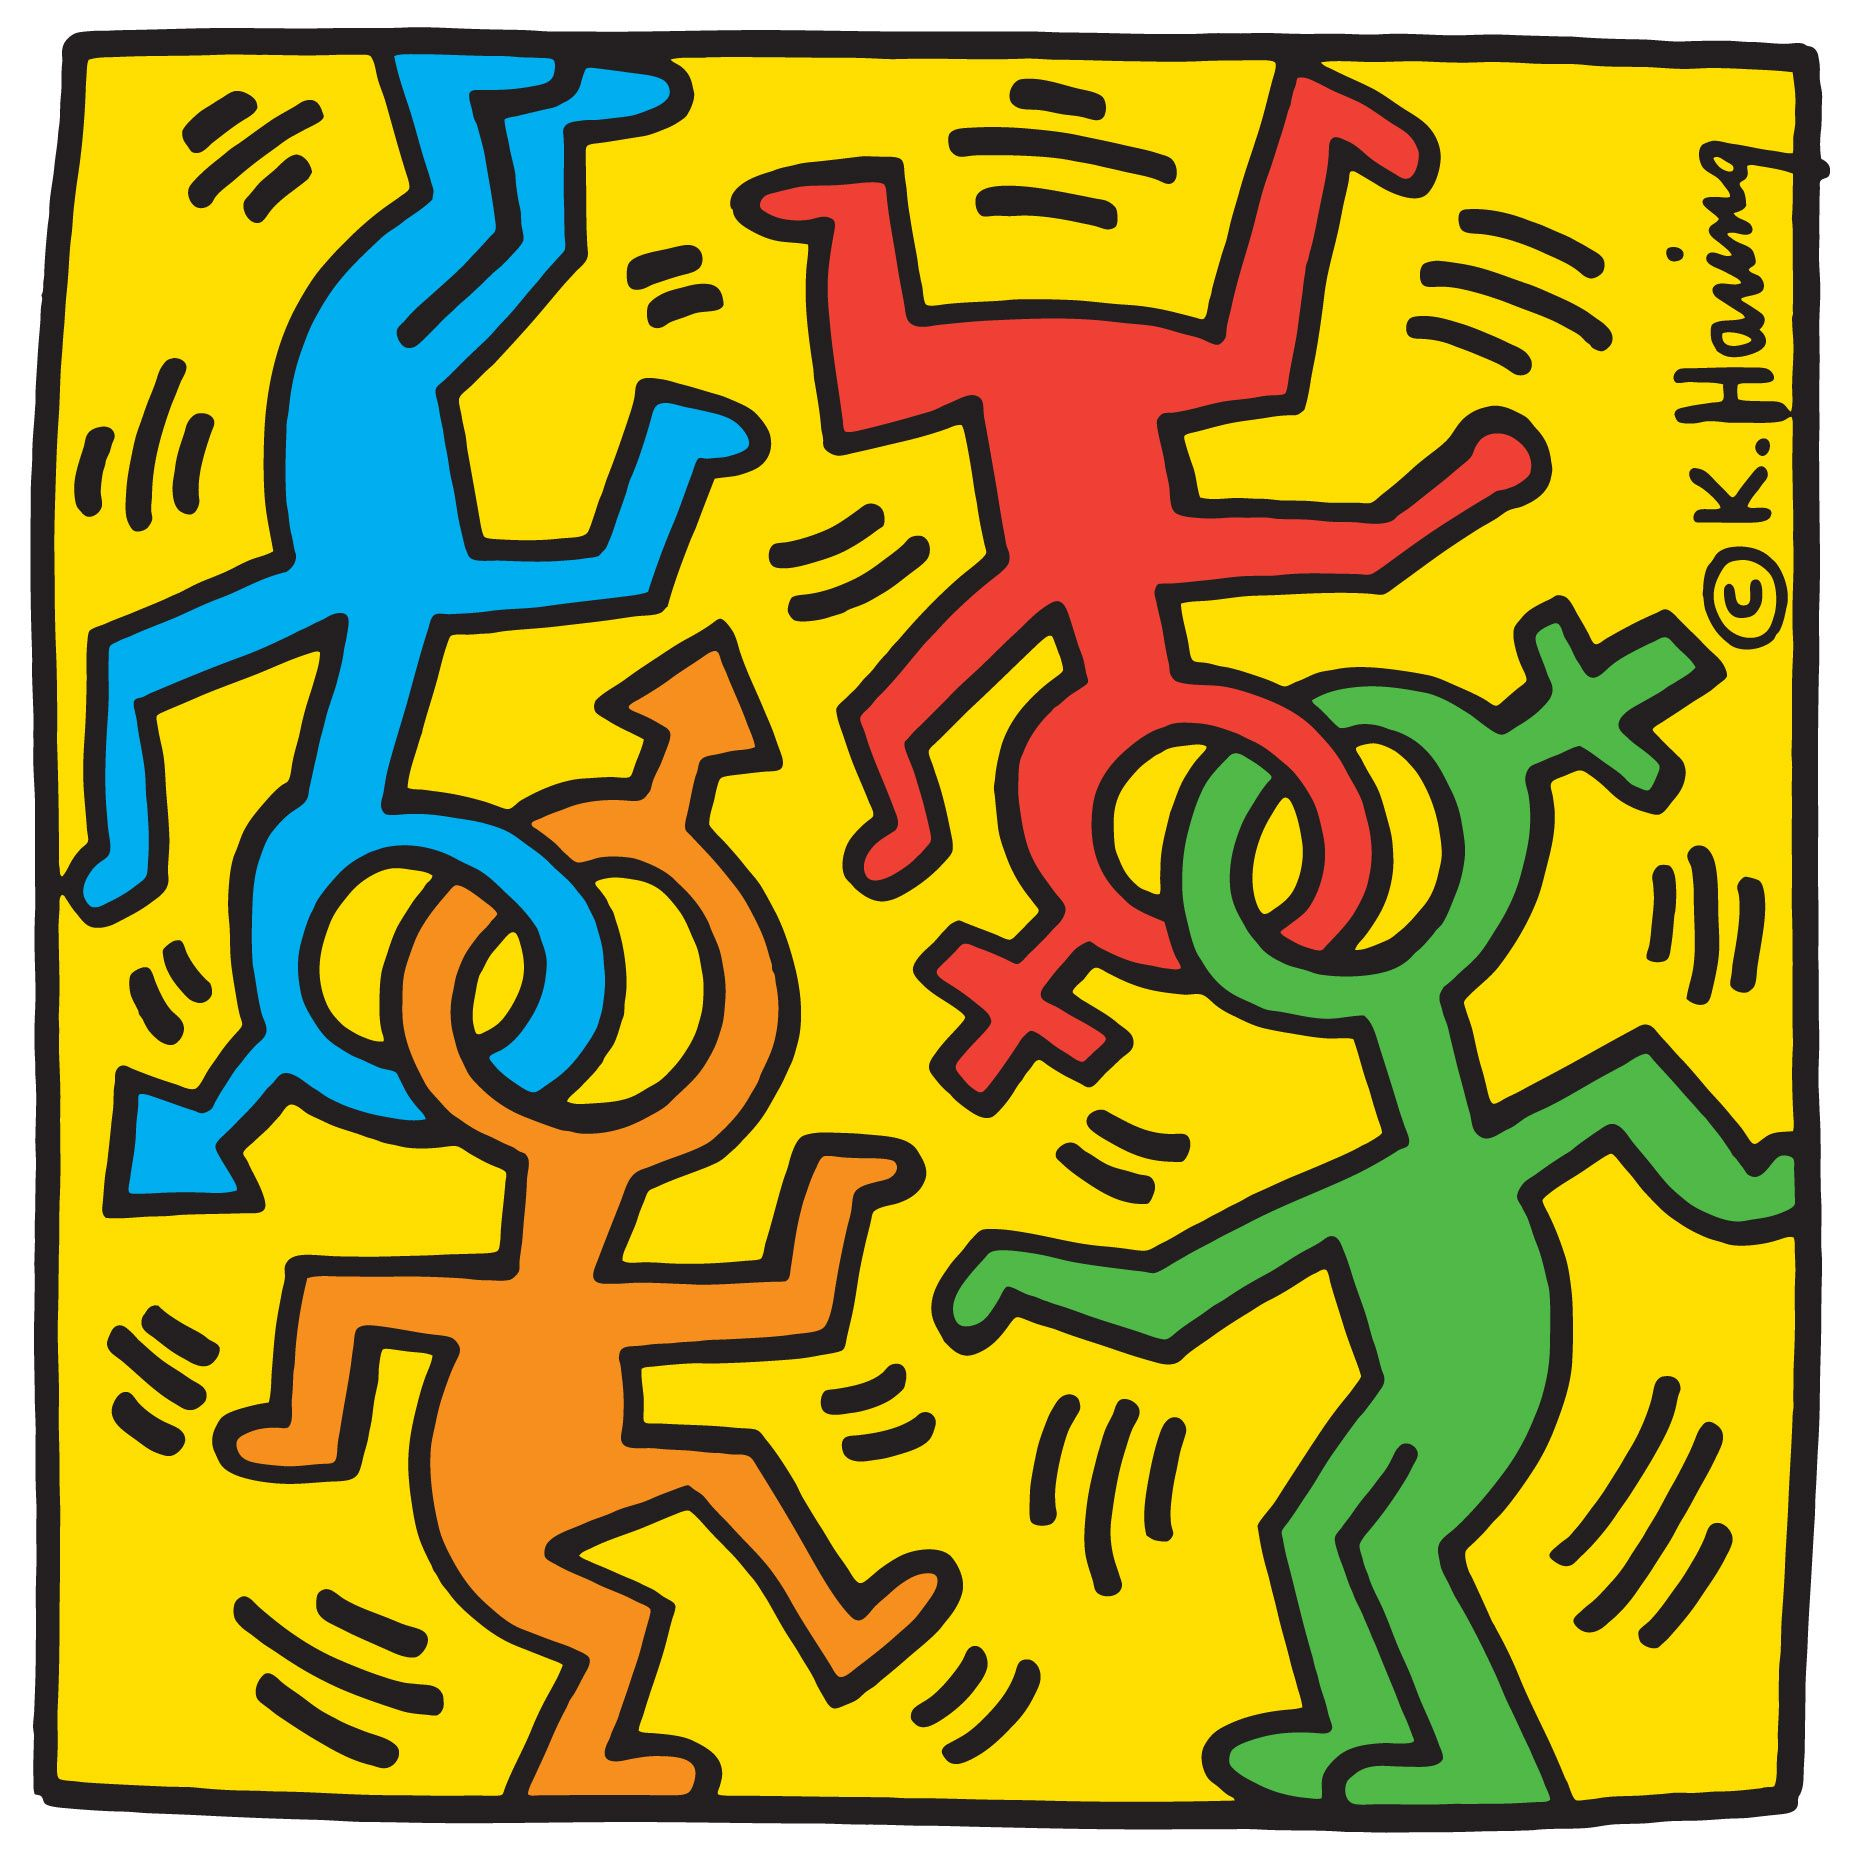 Arte Queer Pdf Nyc Pride Keith In 2019 Keith Haring Art Haring Art Keith